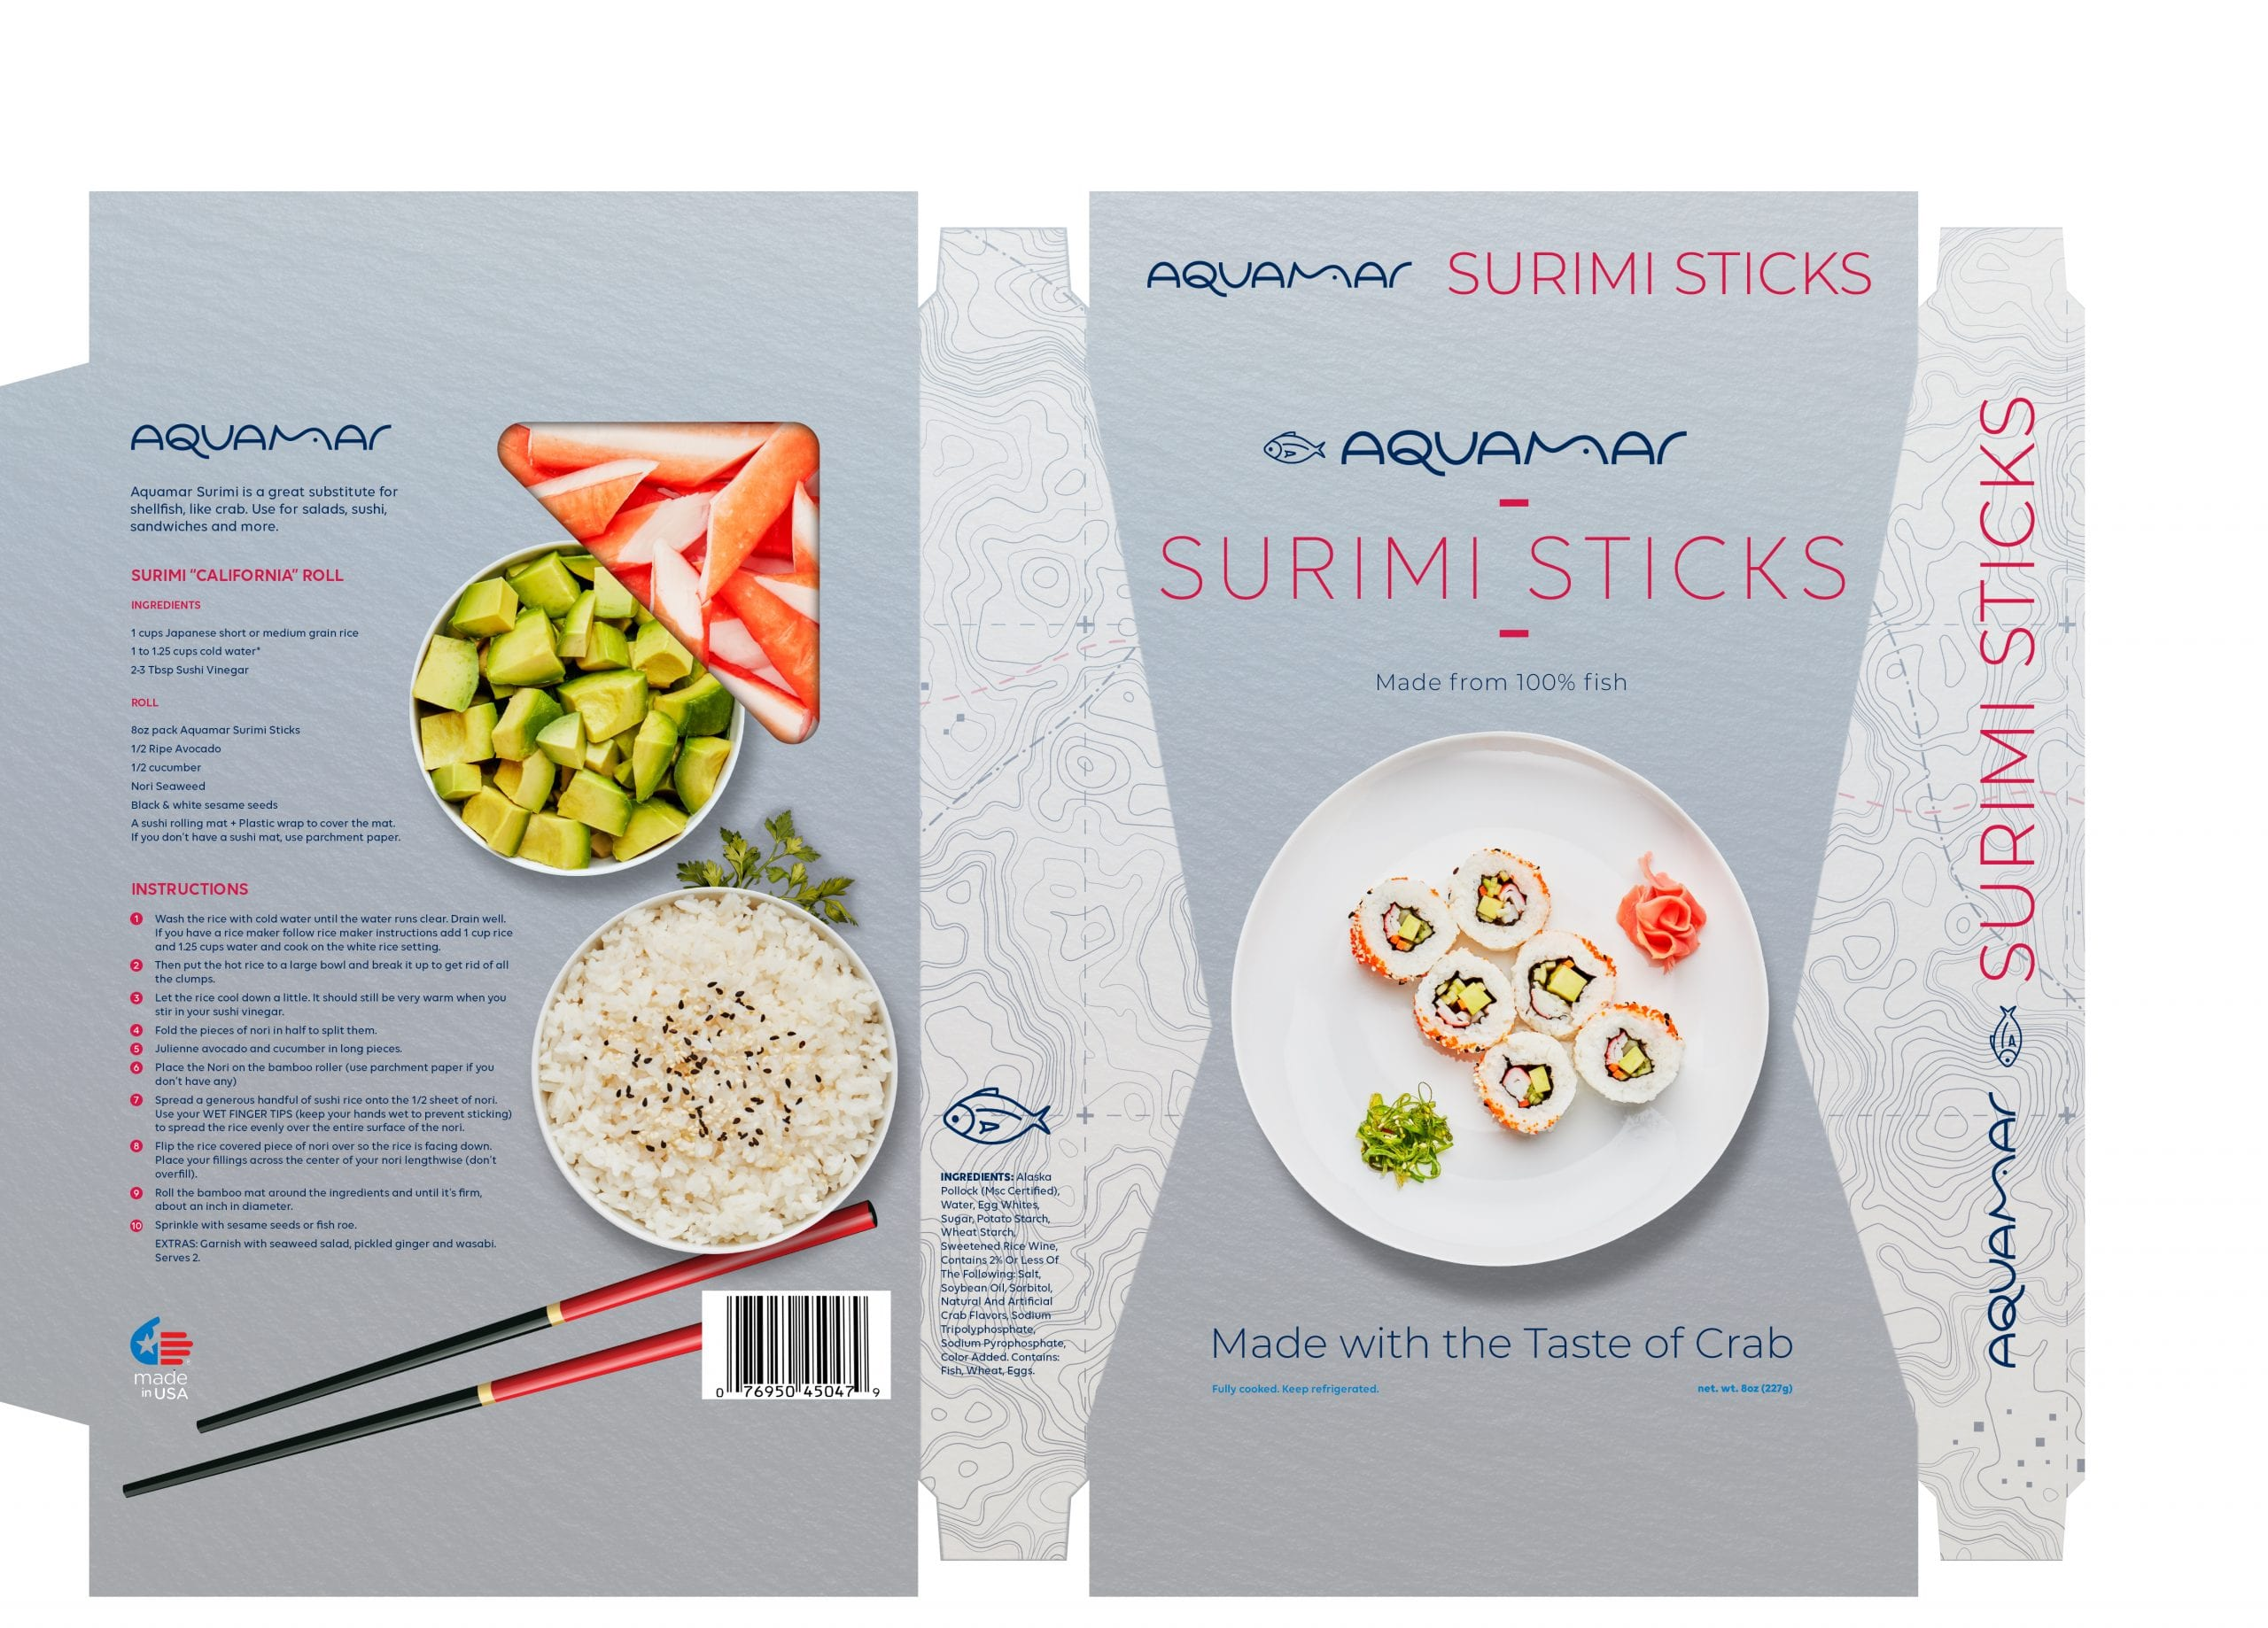 clp_aquamar_flatpackaging_v1_usa_redesign_062620sticks-crab-light